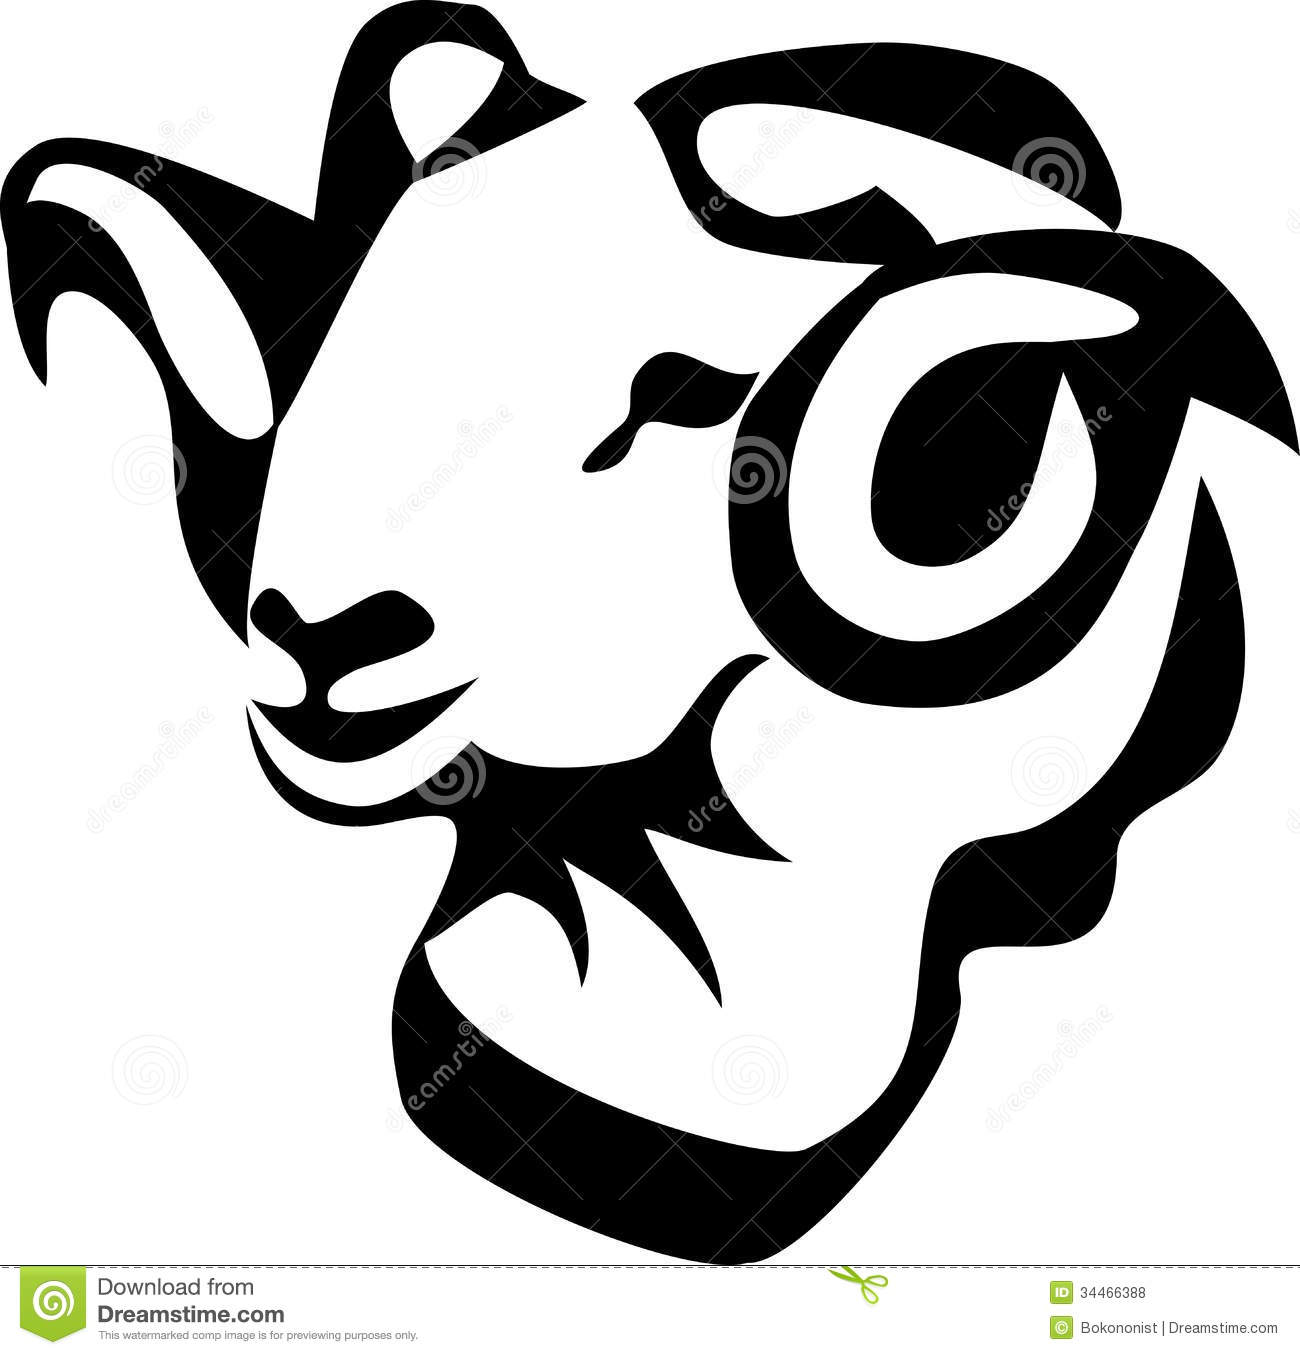 Ram royalty free stock photos image 34466388 for Black and white only